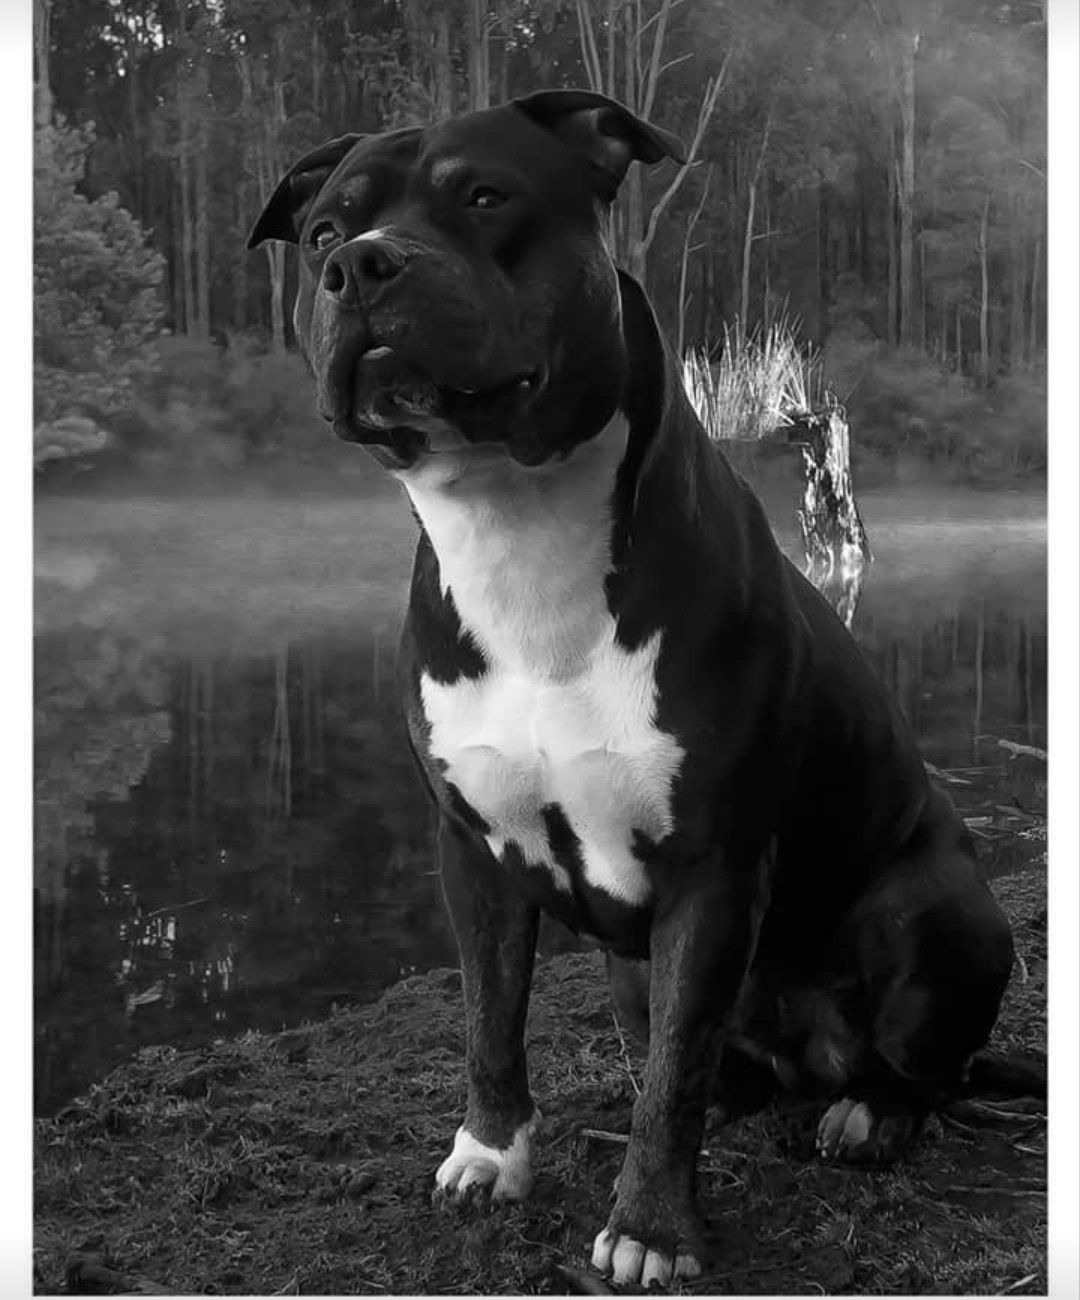 Amstaff American Staffy American Staffordshire Terrier Dog Black Amstaff Puppy Puppies Animali